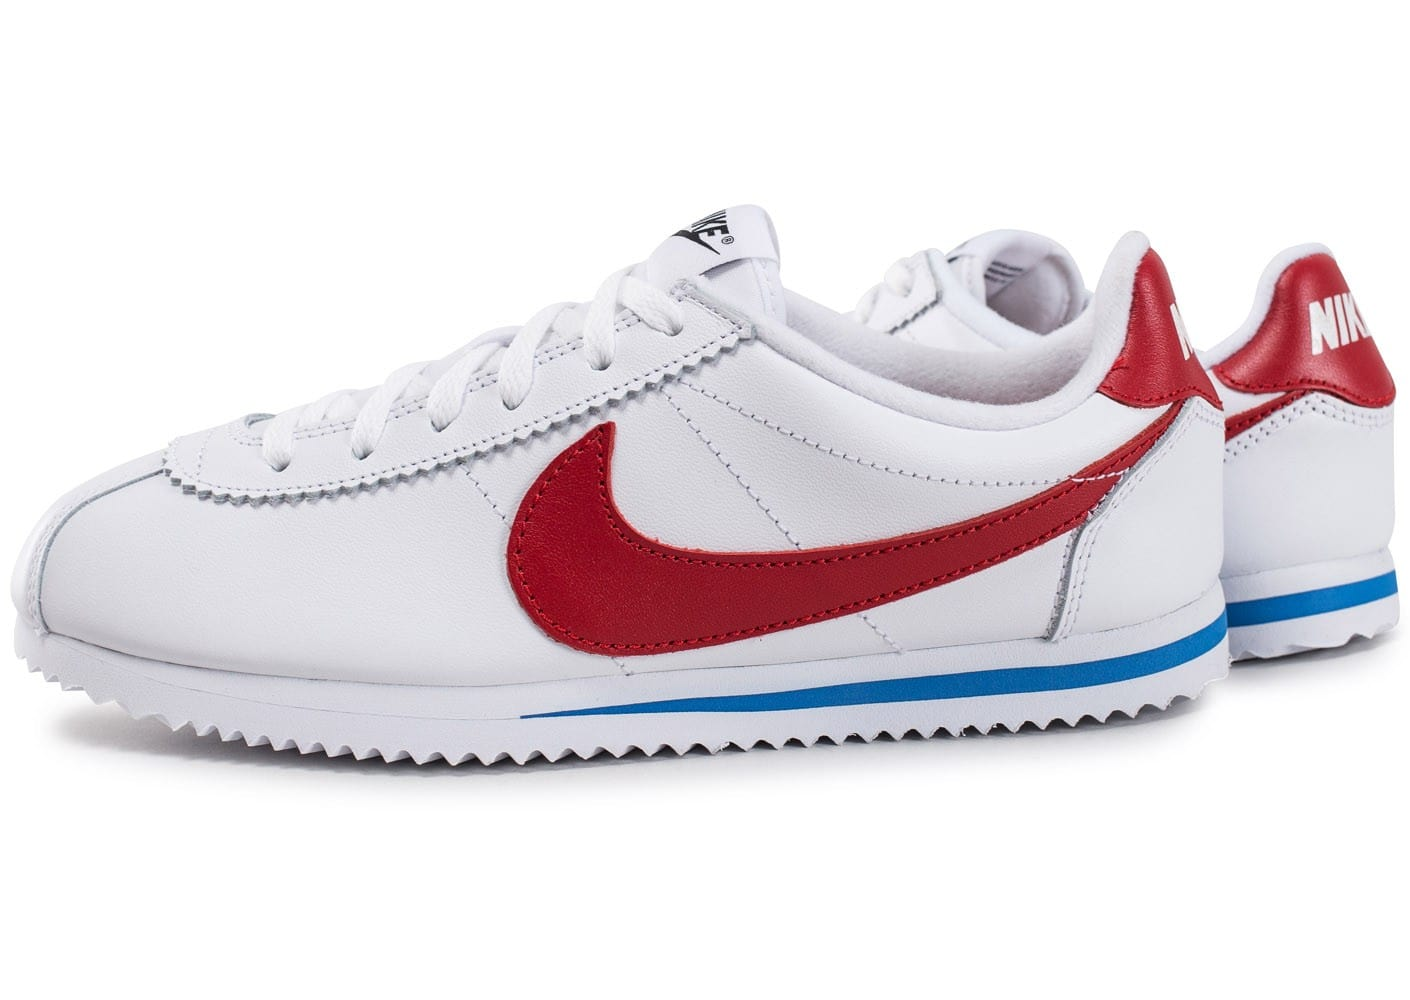 nike cortez leather se junior blanche rouge et bleue chaussures enfant chausport. Black Bedroom Furniture Sets. Home Design Ideas